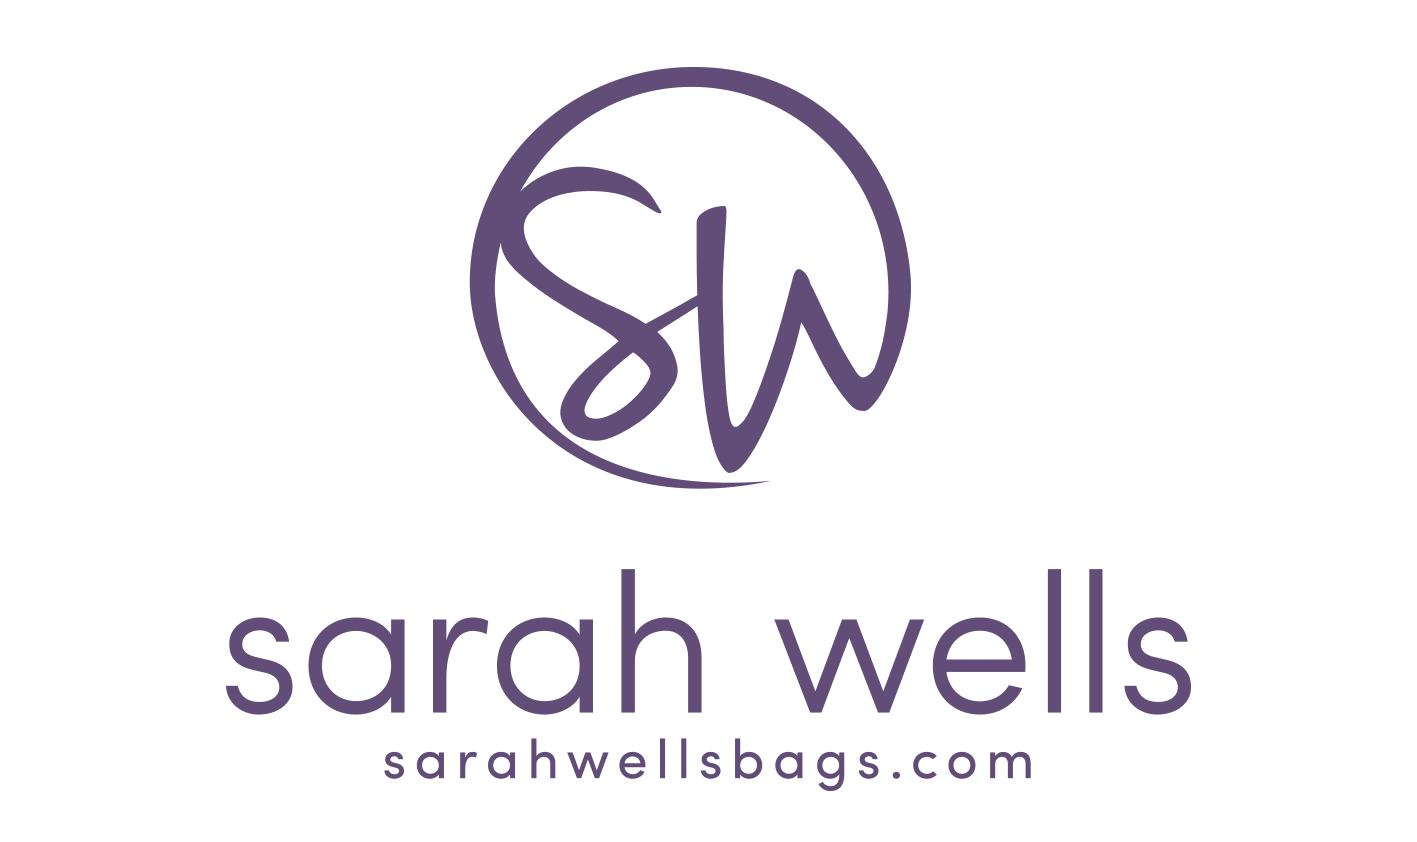 sarah-wells-bags-logo-stacked-website.png